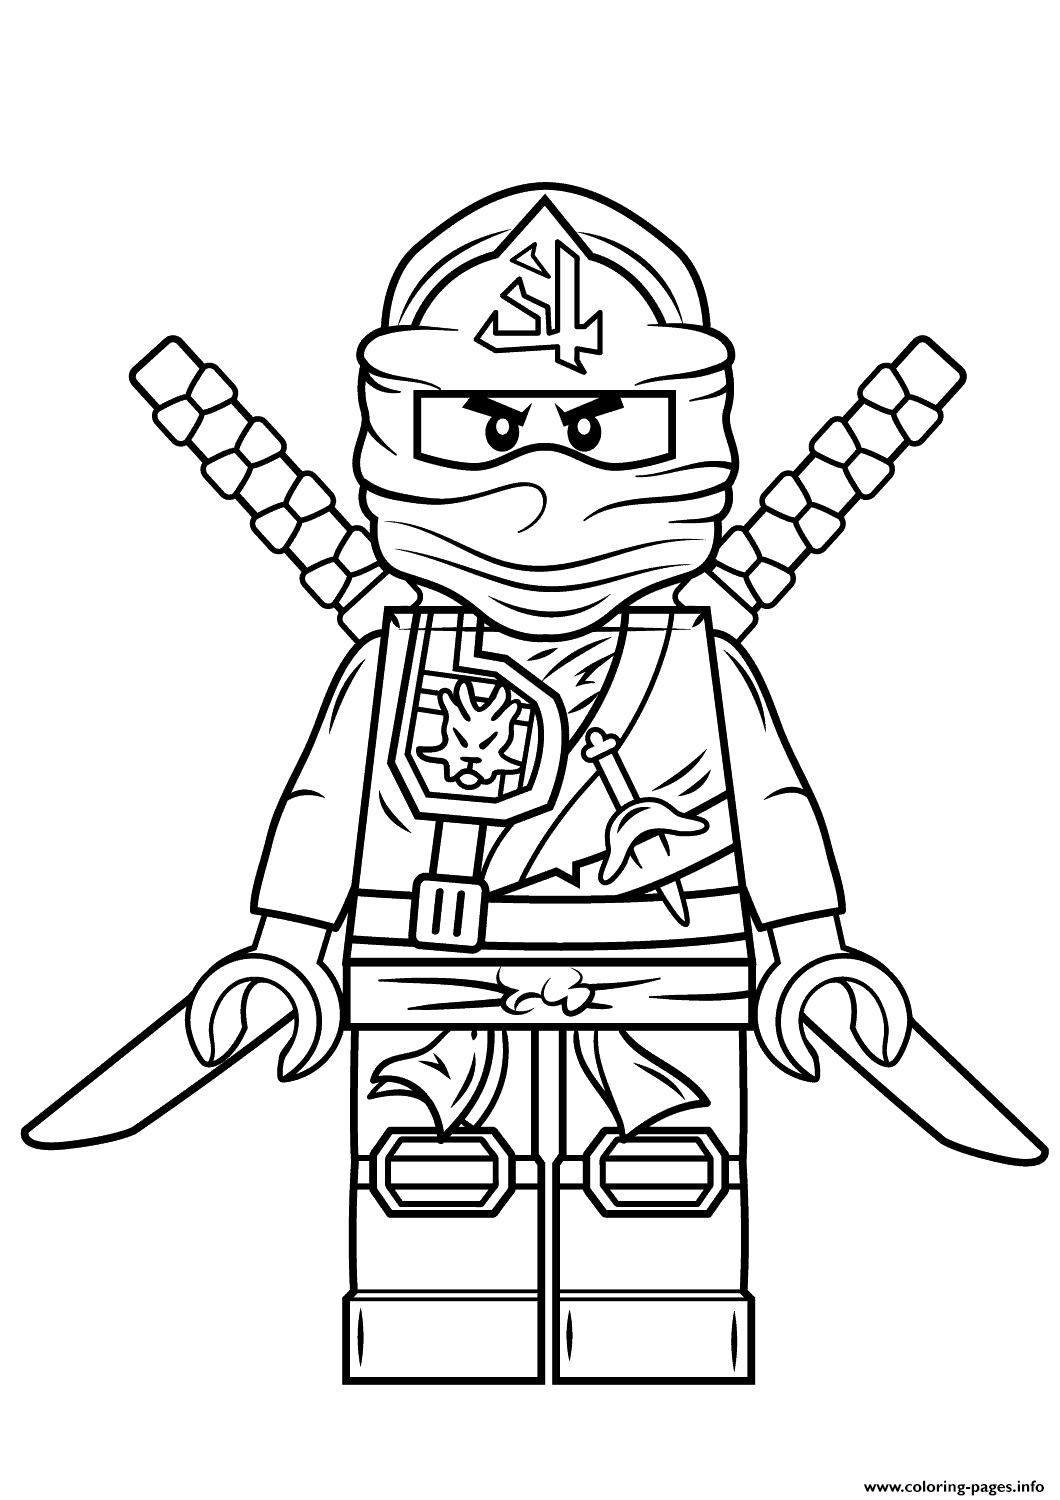 lego printable colouring pages free printable lego coloring pages for kids cool2bkids printable pages colouring lego